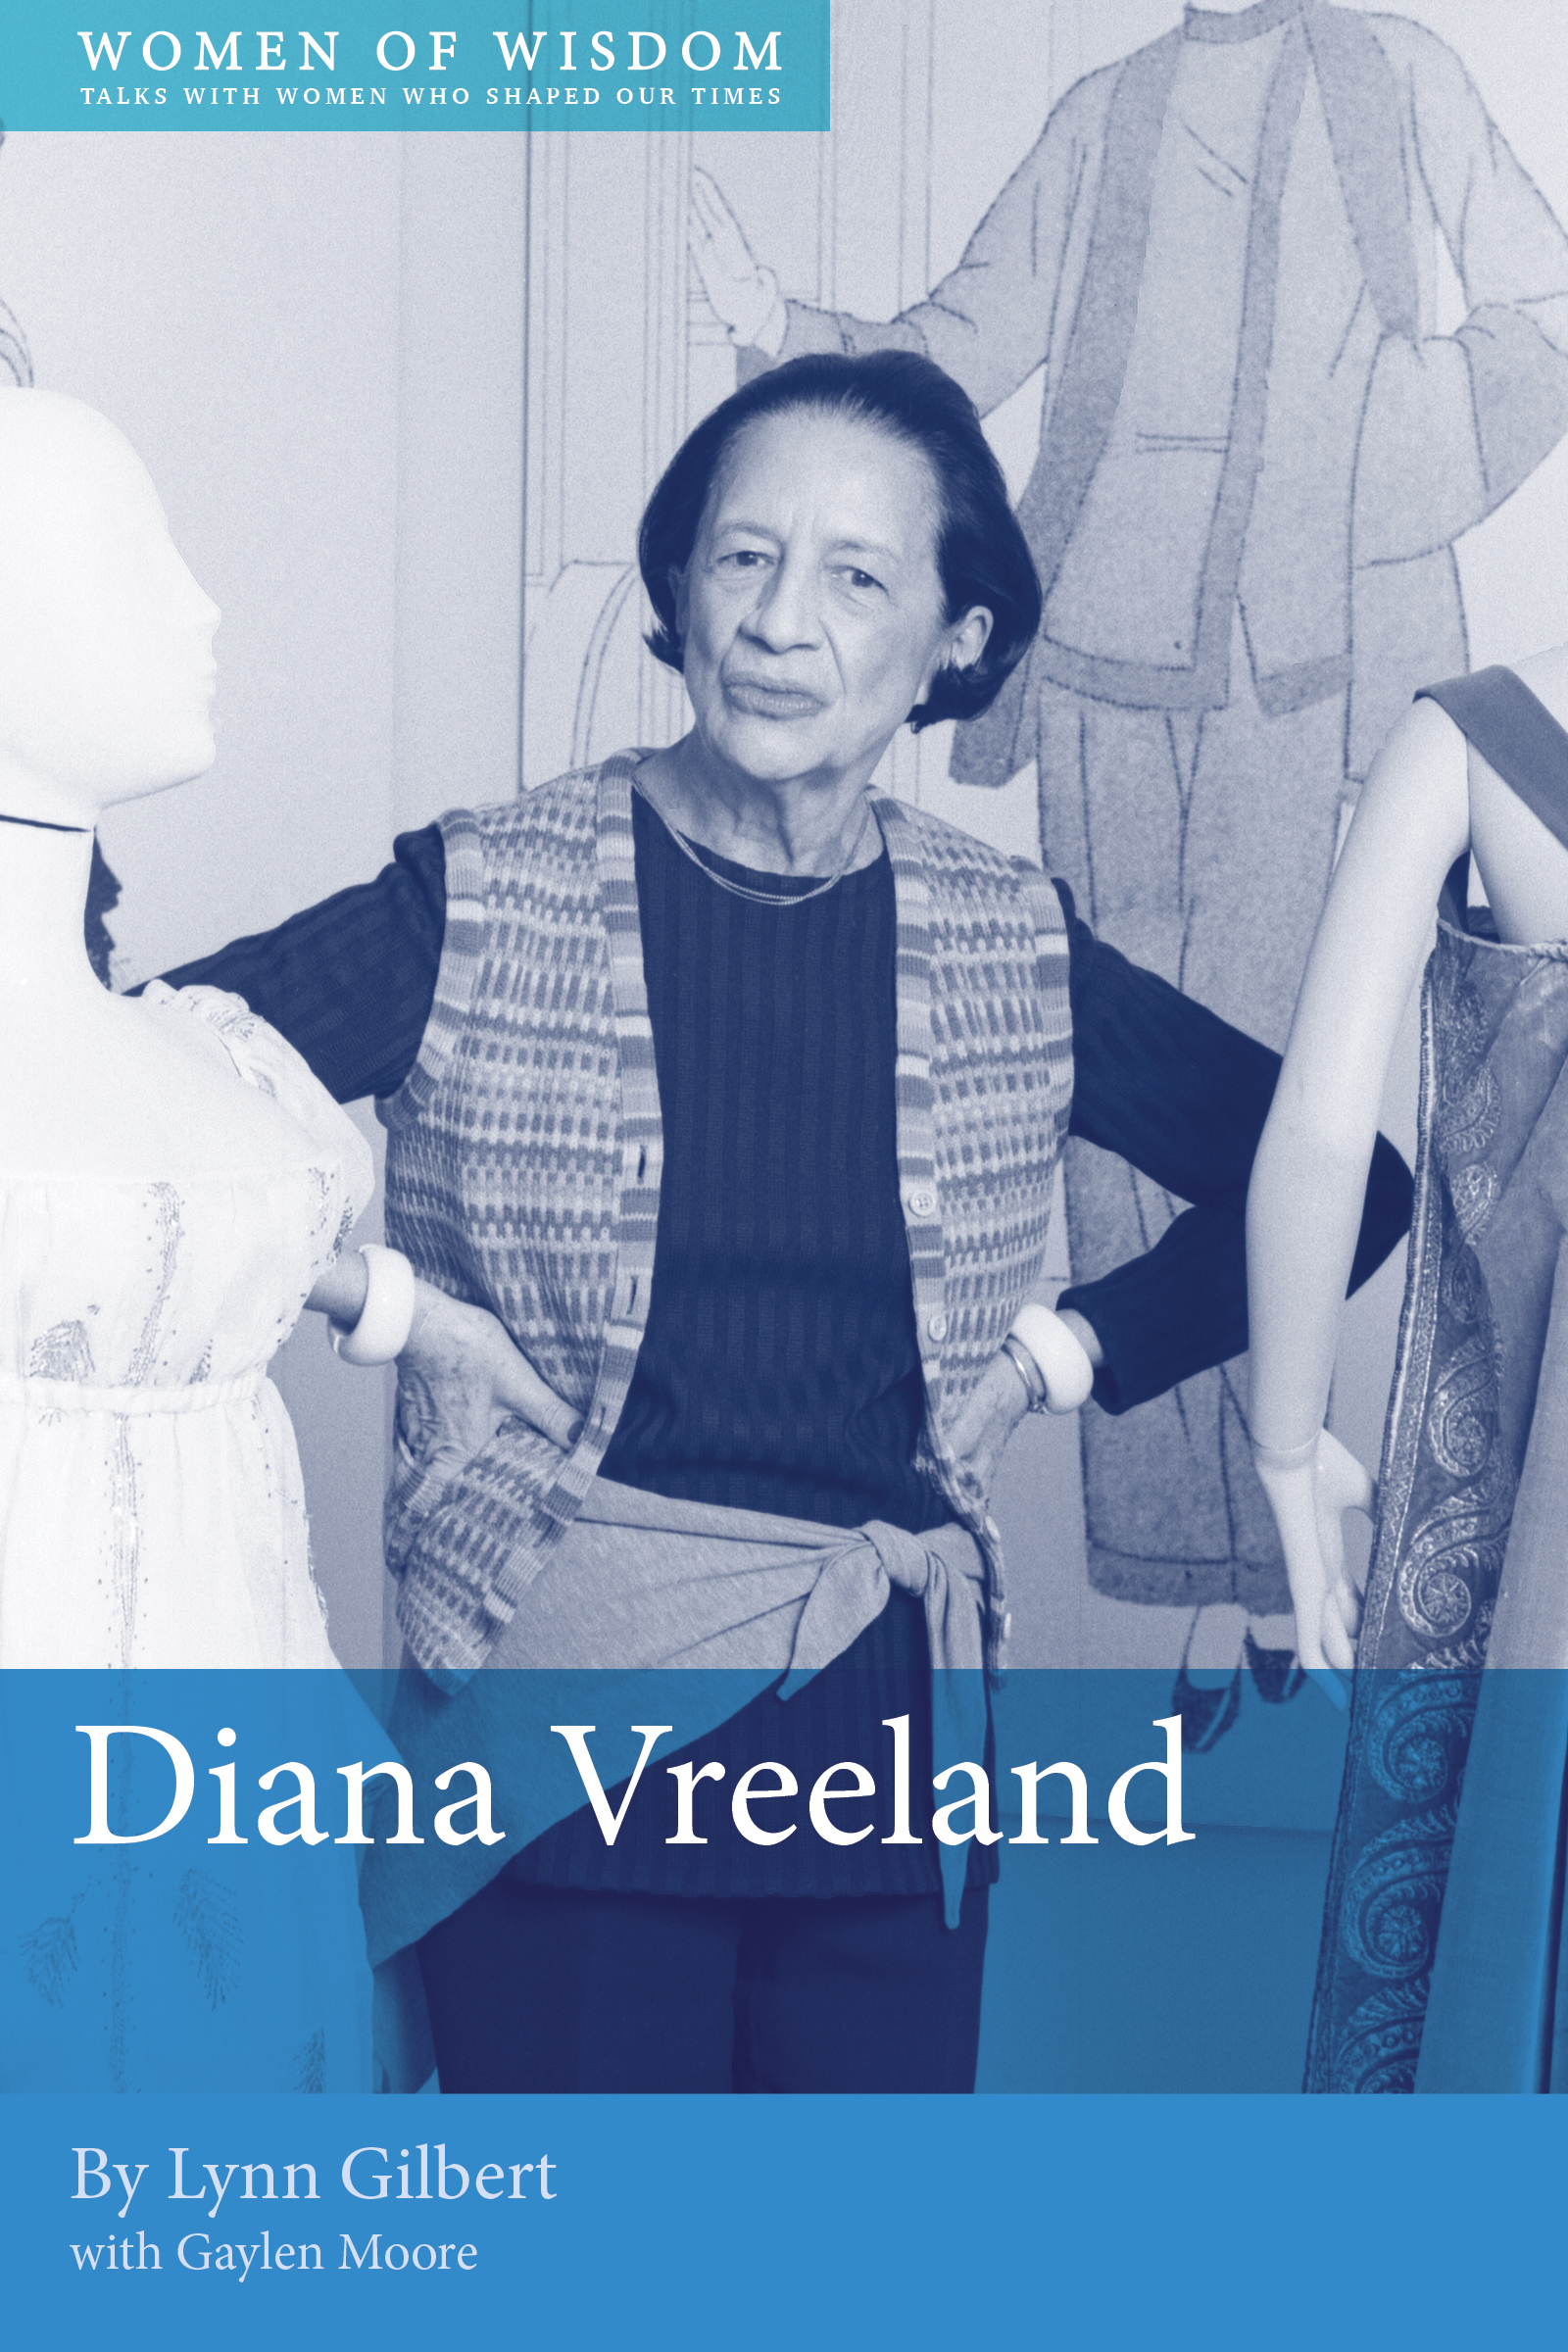 Diana_Vreeland_Photographed_by_Lynn_Gilbert_©_1981_Particular_Passions